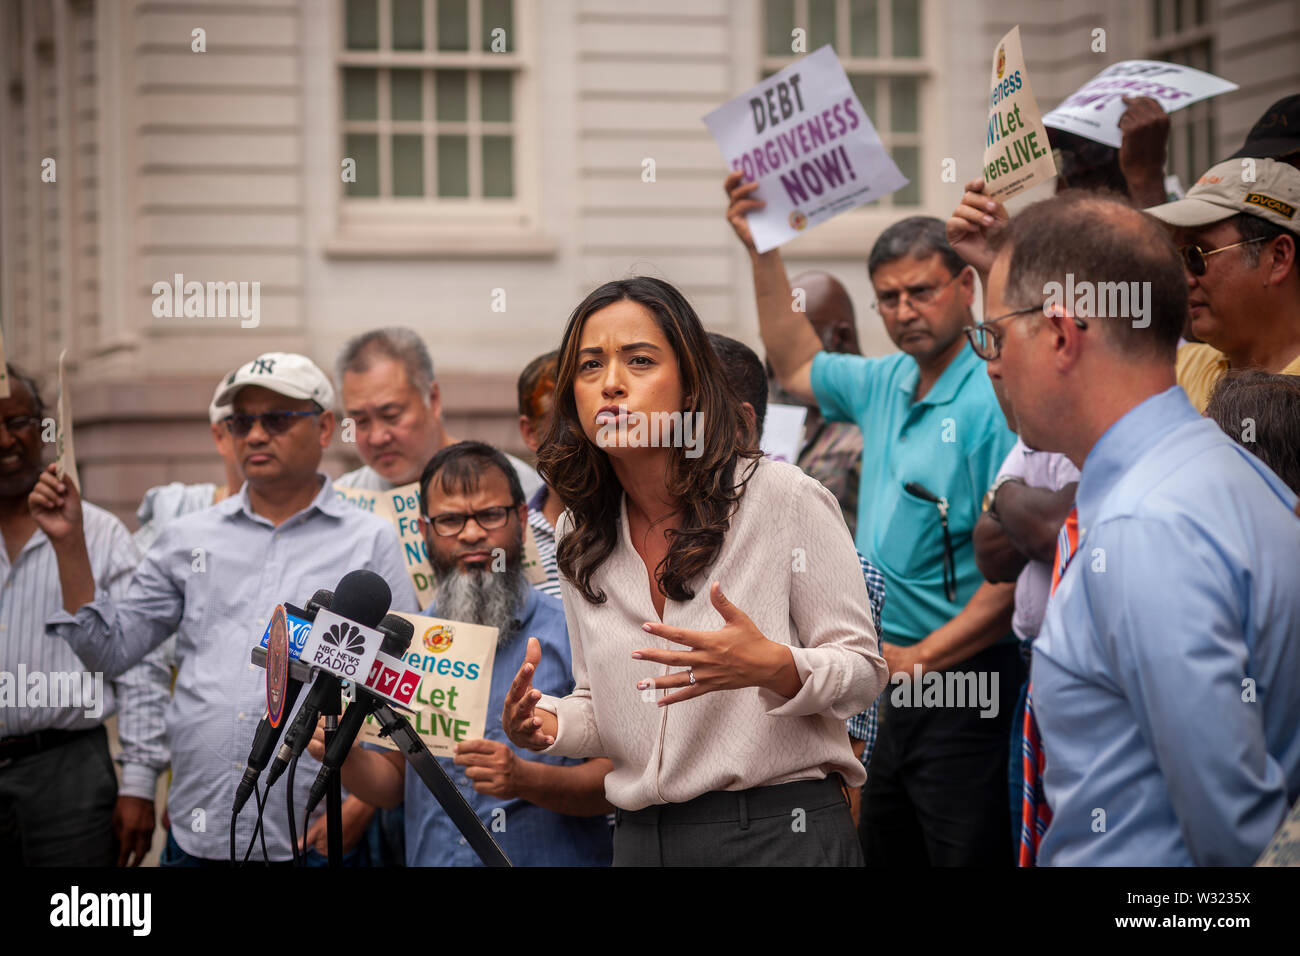 NYC Council Member Carolina Rivera speaks at a press conference with New York taxi drivers and their supporters on the steps of NY City Hall on Thursday, July 11, 2019  calling for debt forgiveness for their medallion loans. Medallion brokers allegedly took advantage of drivers who bought medallions at artificially inflated prices and ended up burdened with debt. A number of drivers have filed for bankruptcy or are considering it and there have been a few suicides amongst stressed drivers. (© Richard B. Levine) - Stock Image